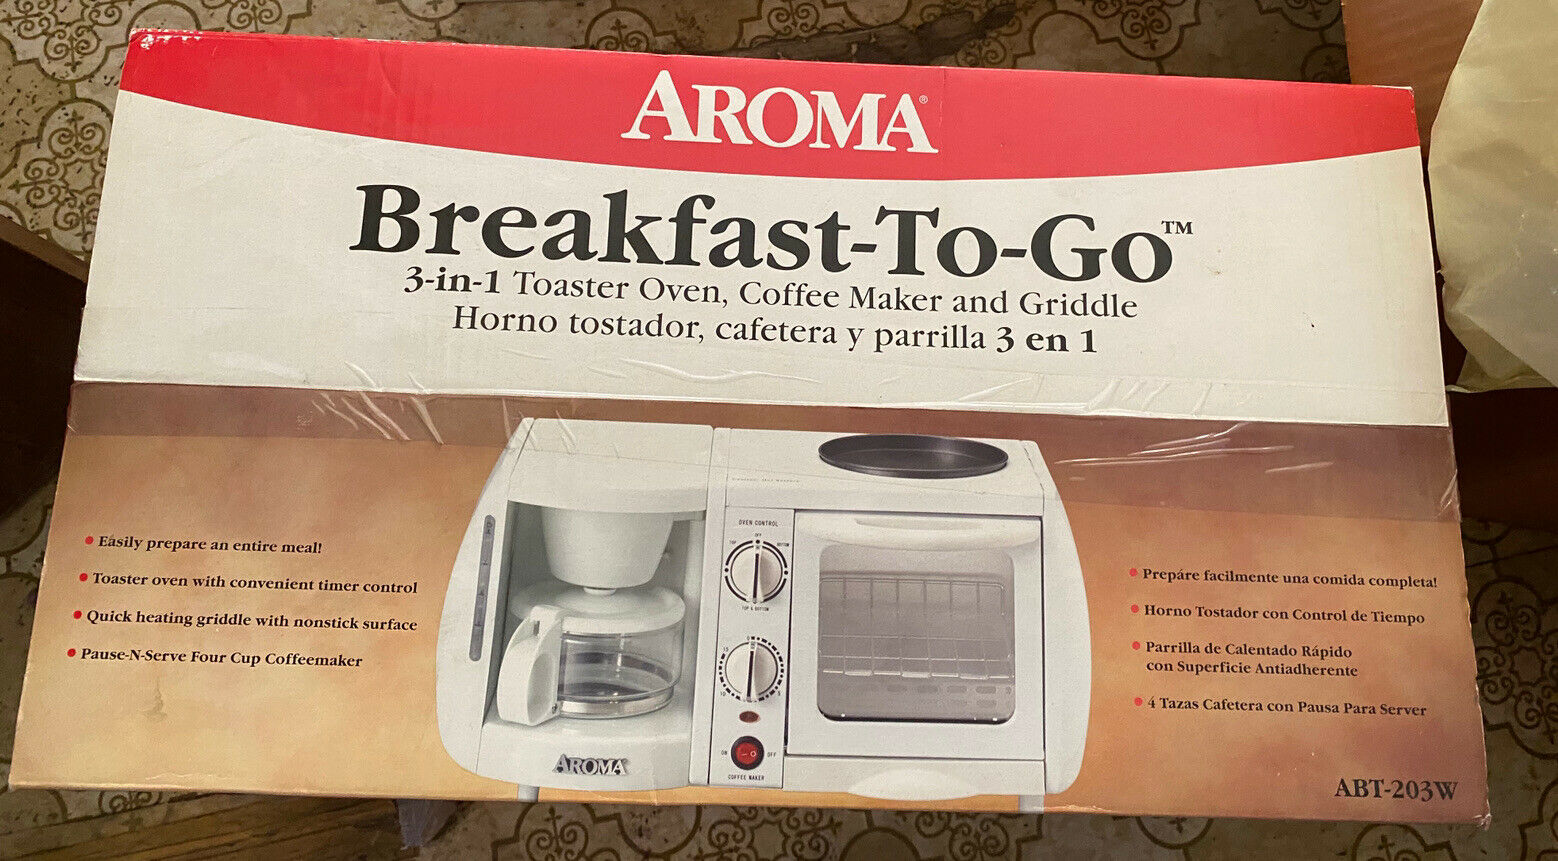 3-in-1 bisque breakfast station toaster ovennostalgia griddle coffee maker